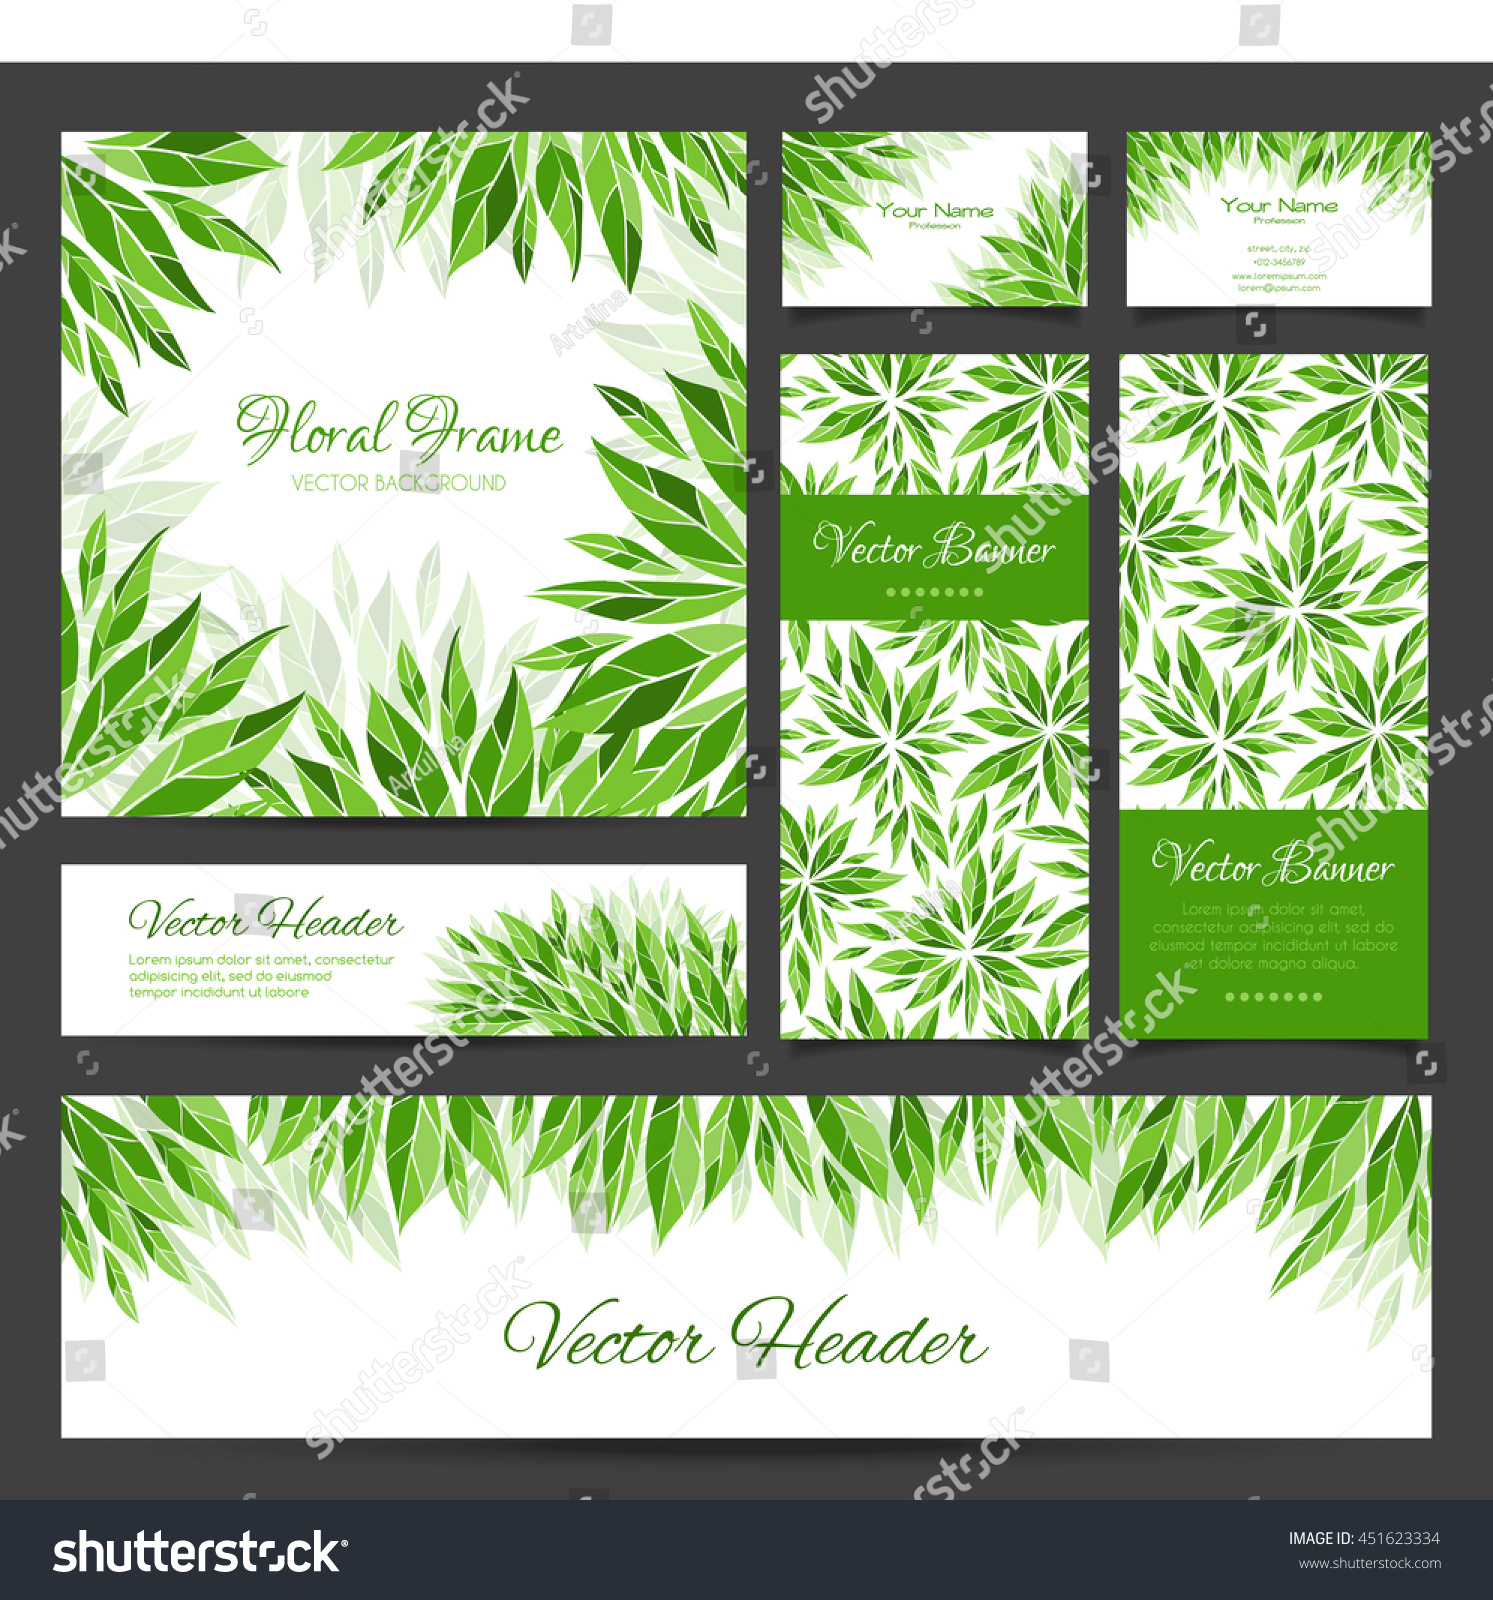 Set vector banners business card frame stock vector 451623334 set of vector banners business card frame and headers in the same floral style magicingreecefo Gallery